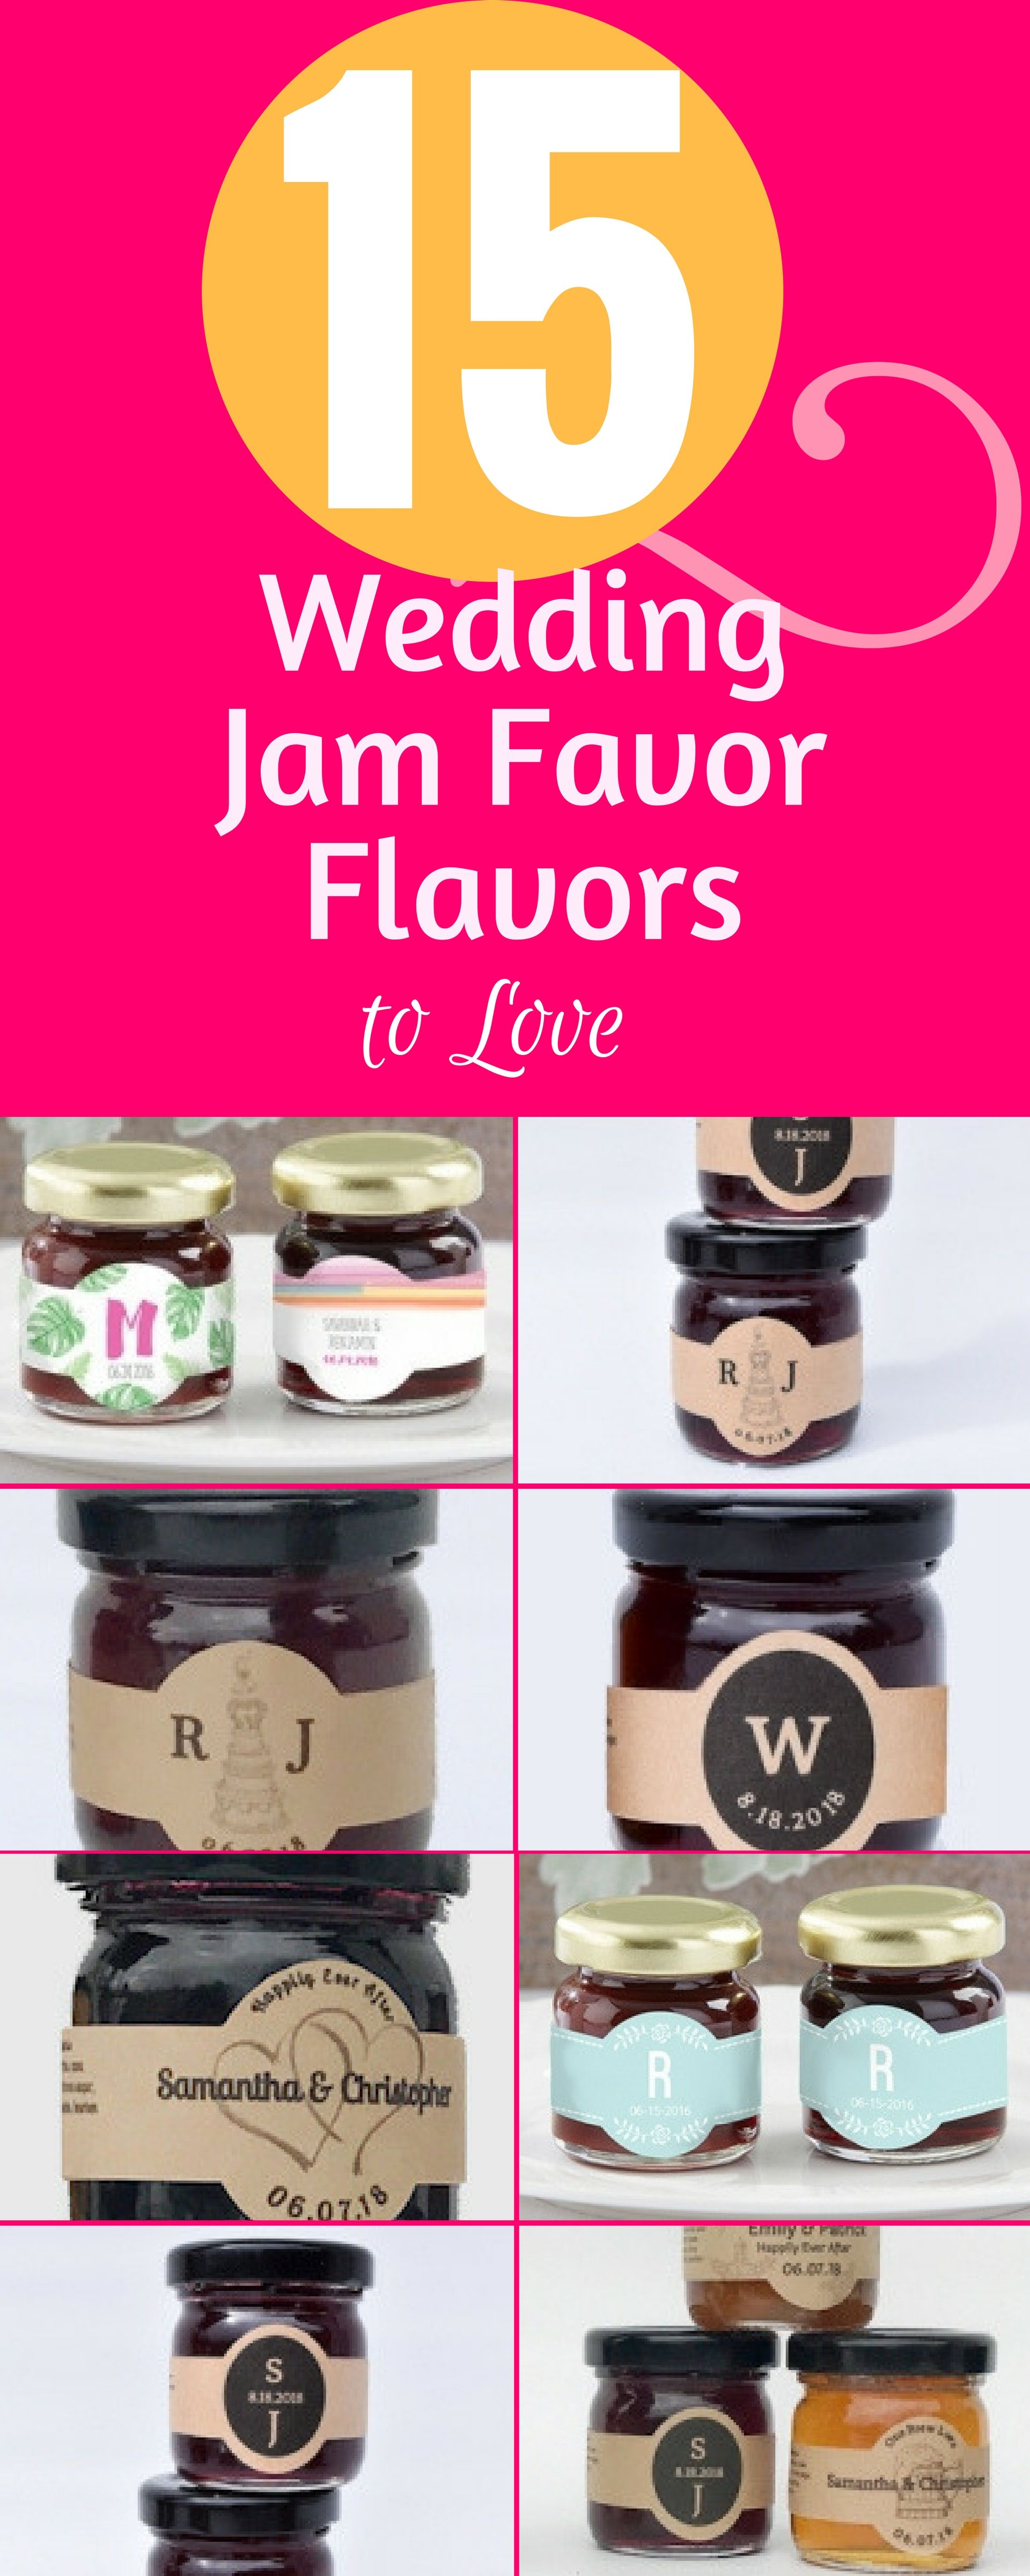 From Spiced Wine to Raspberry Smoked Jams...some creative ideas on ...